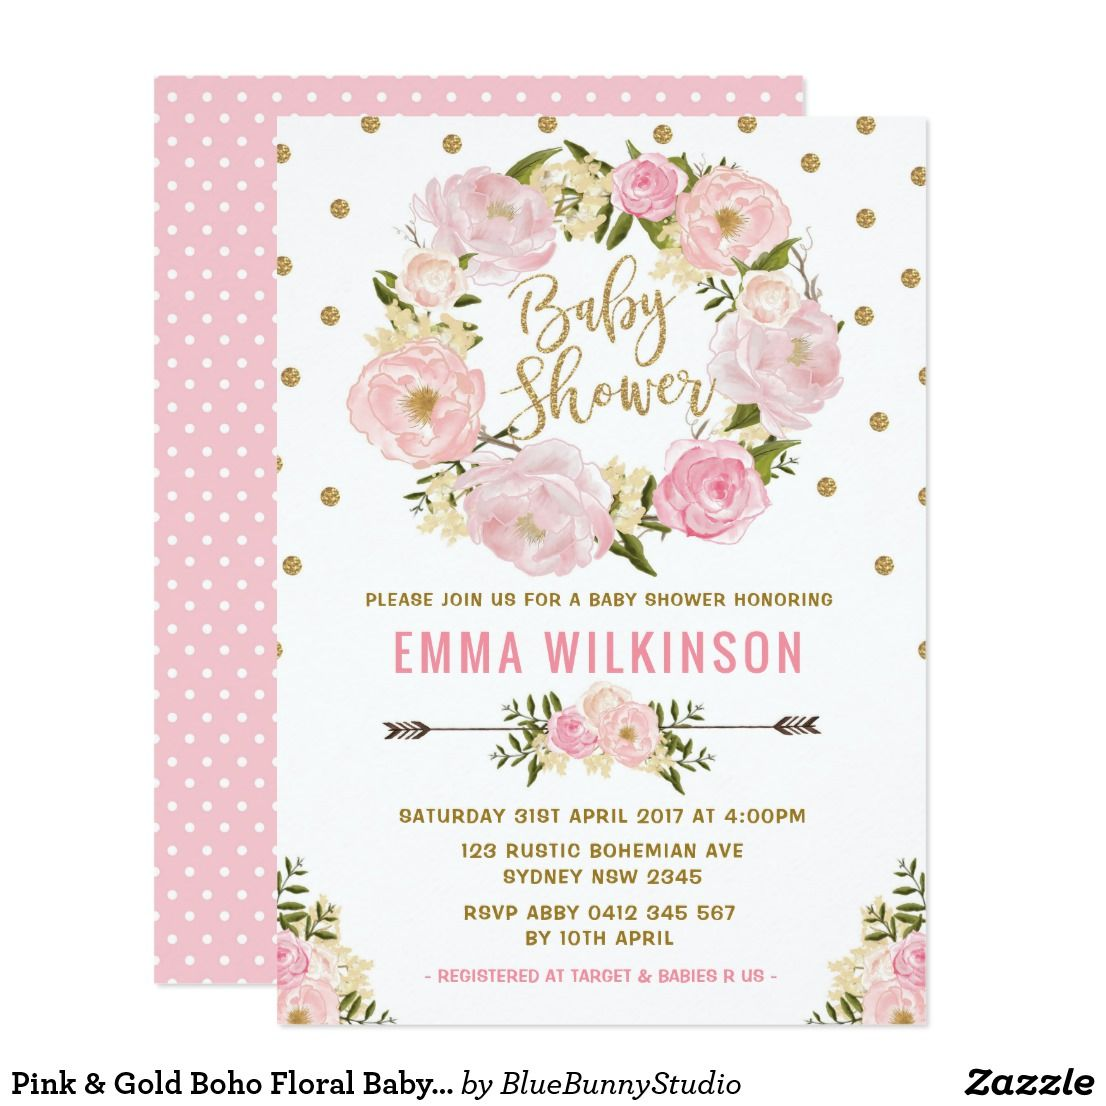 Pink & Gold Boho Floral Baby Shower Invitation Sweet and girly baby ...